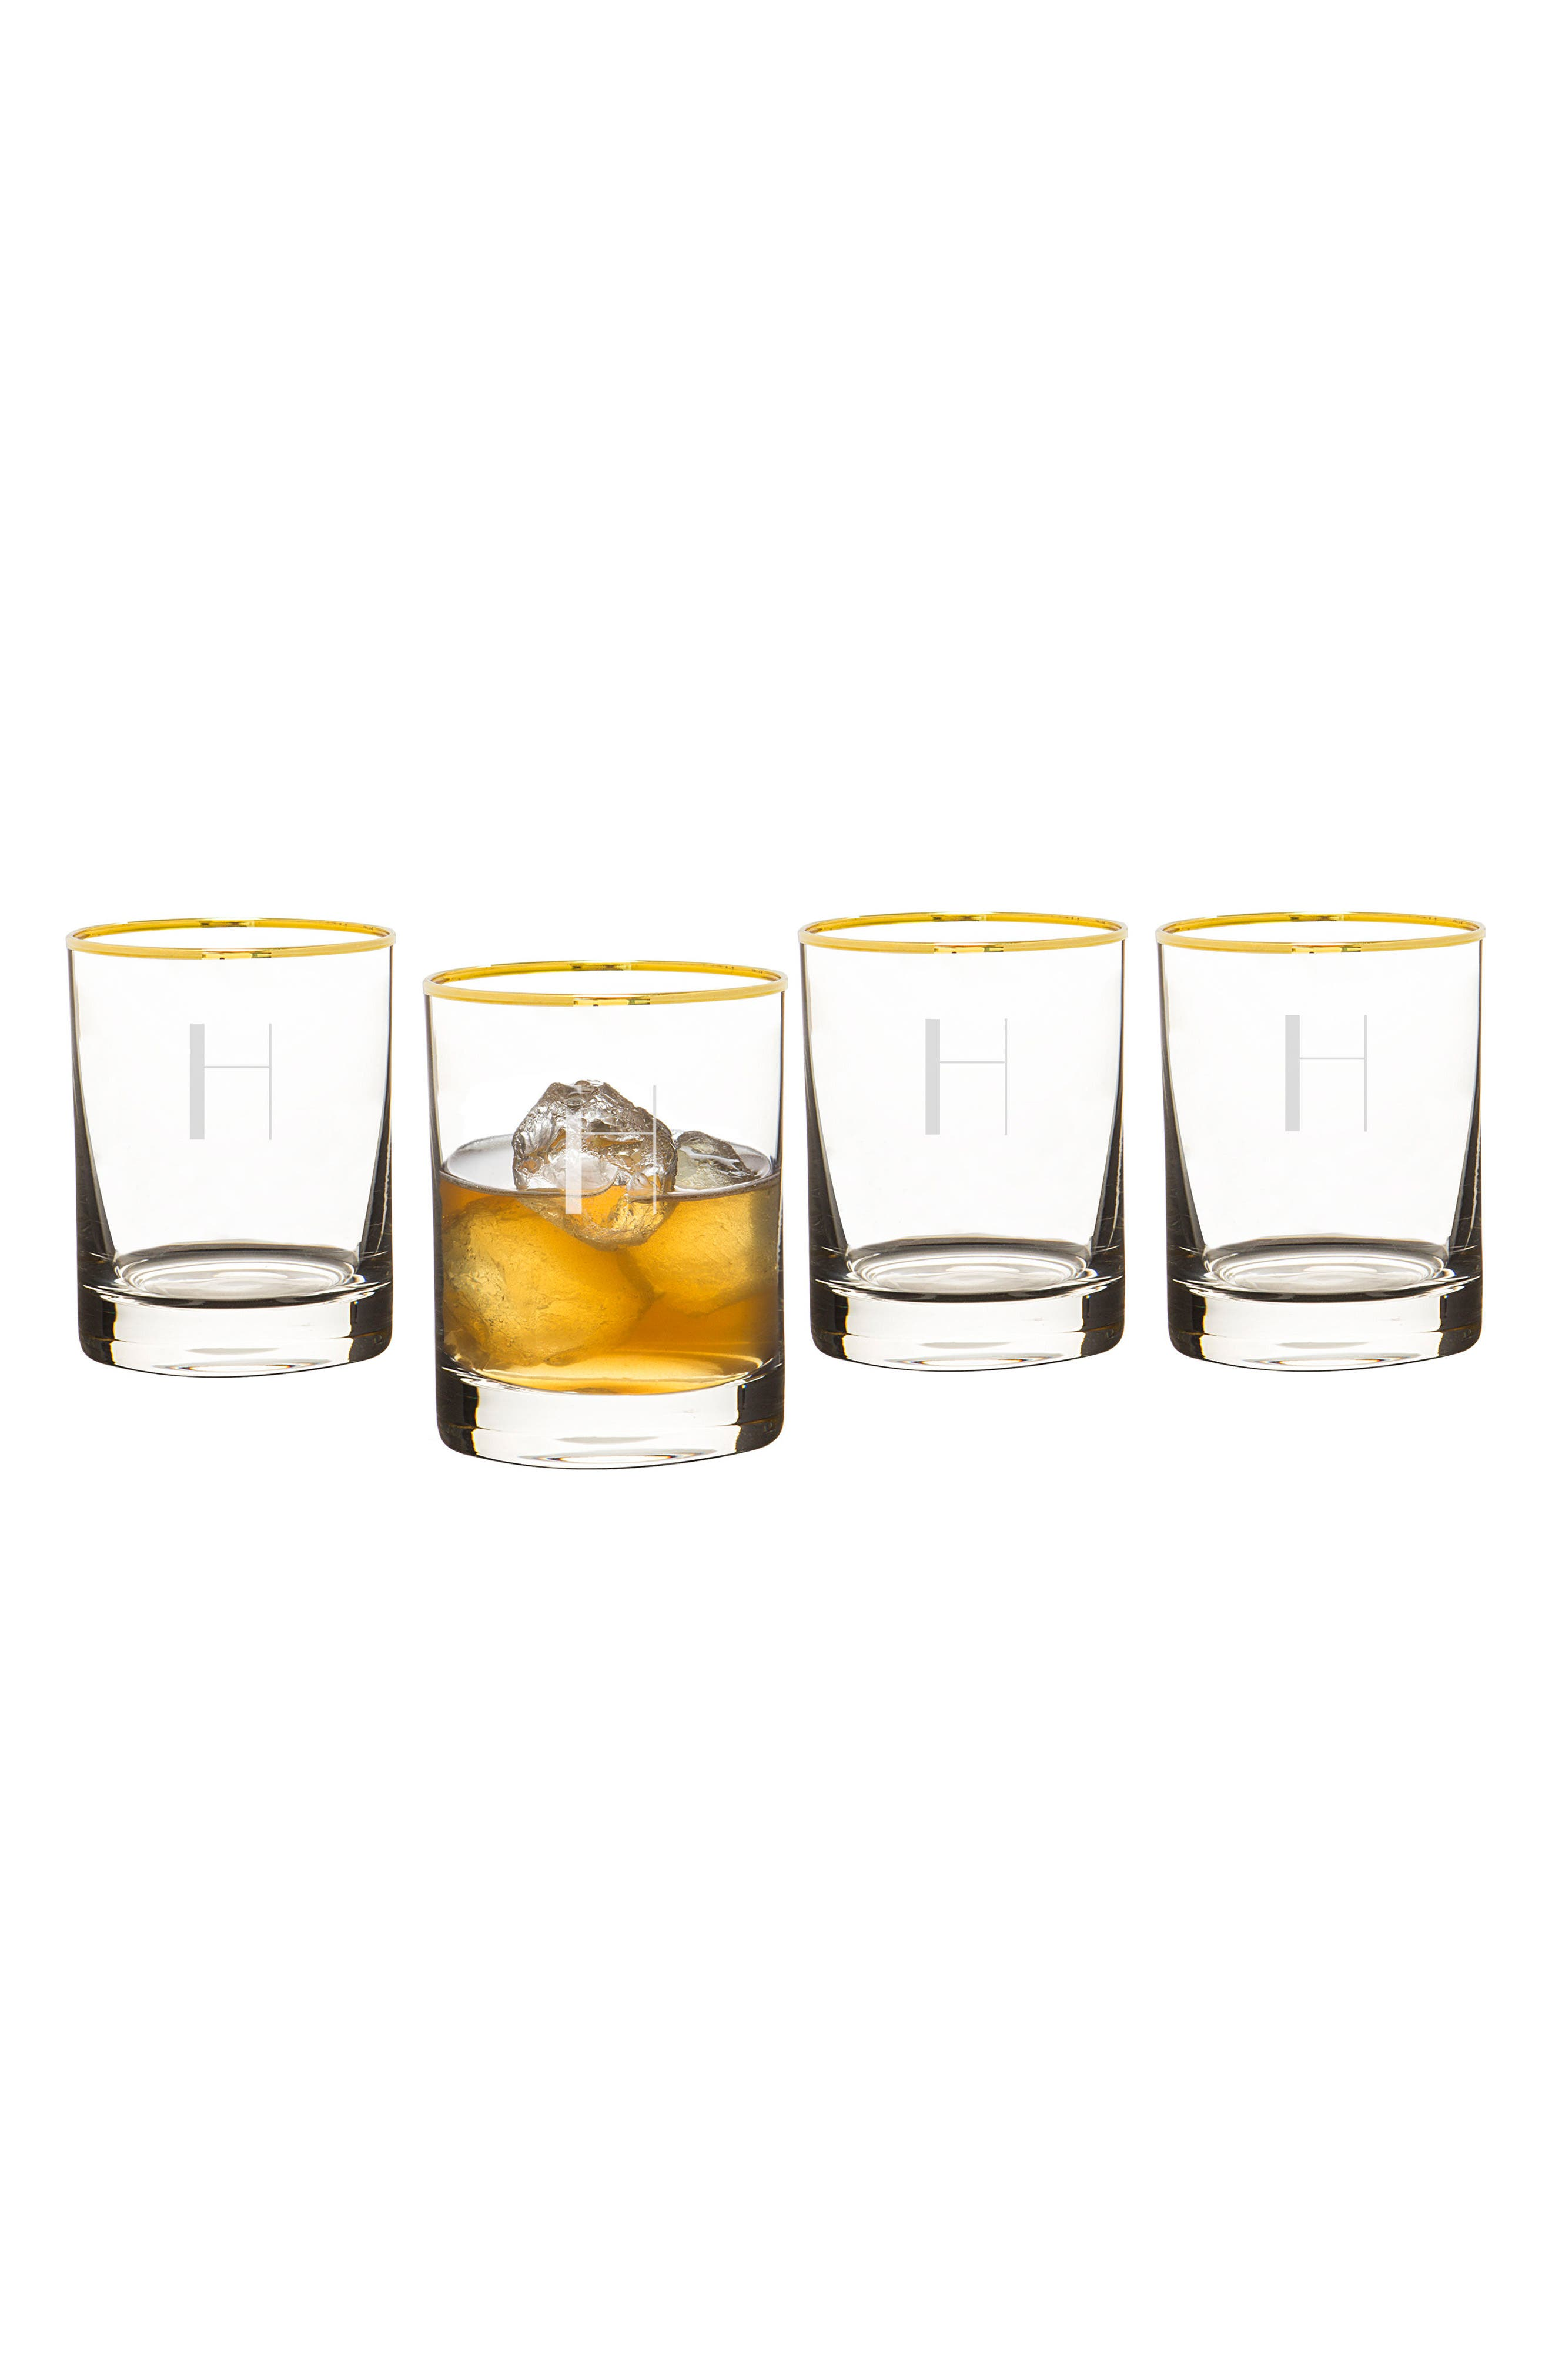 Monogram Set of 4 Double Old Fashioned Glasses,                             Main thumbnail 9, color,